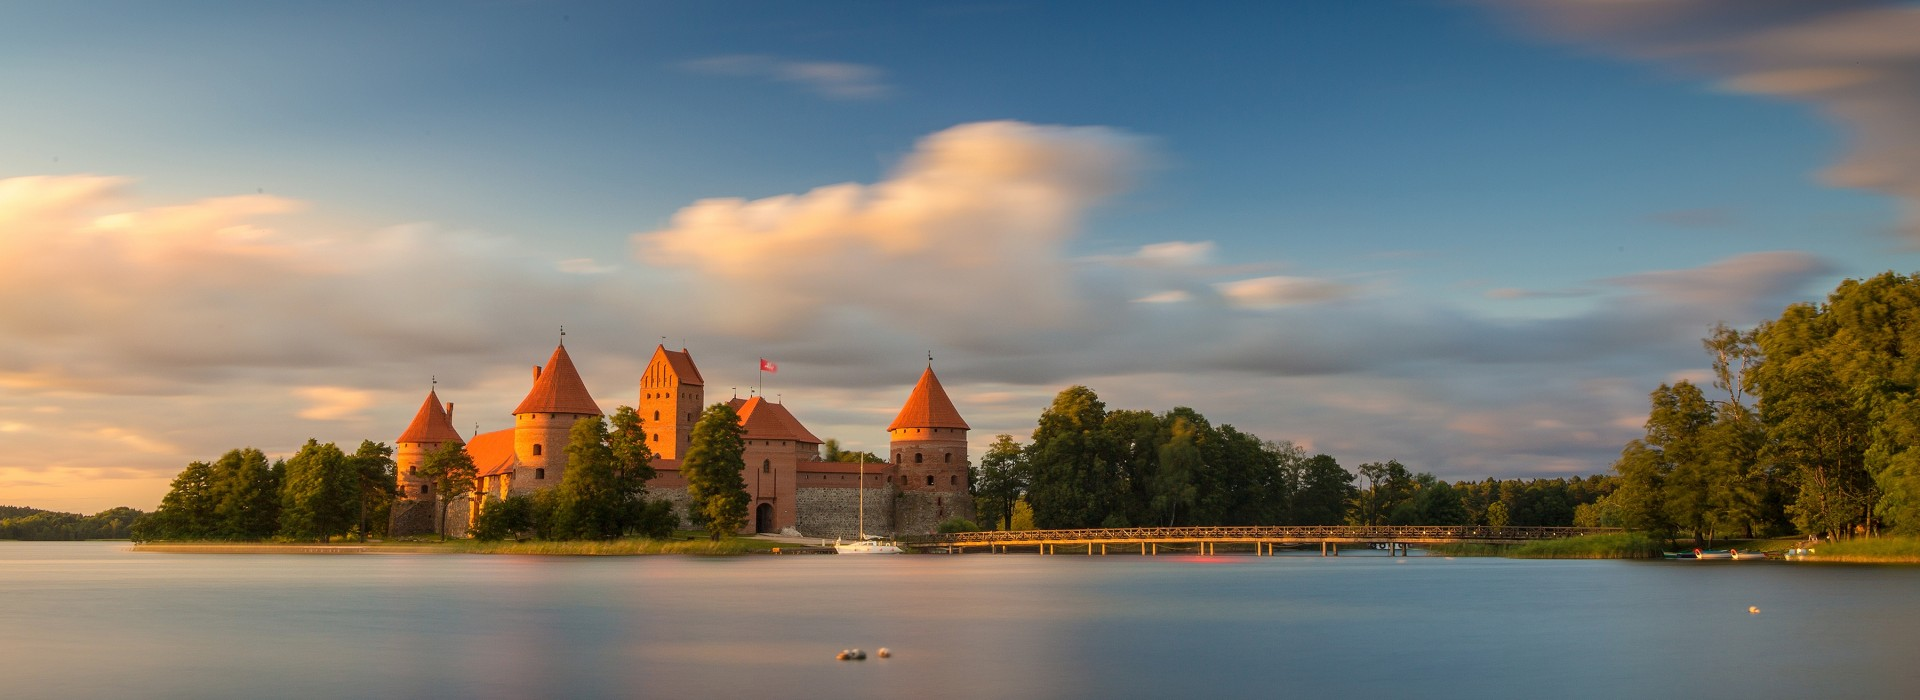 Travelling Lithuania - Tours and Trips in Lithuania